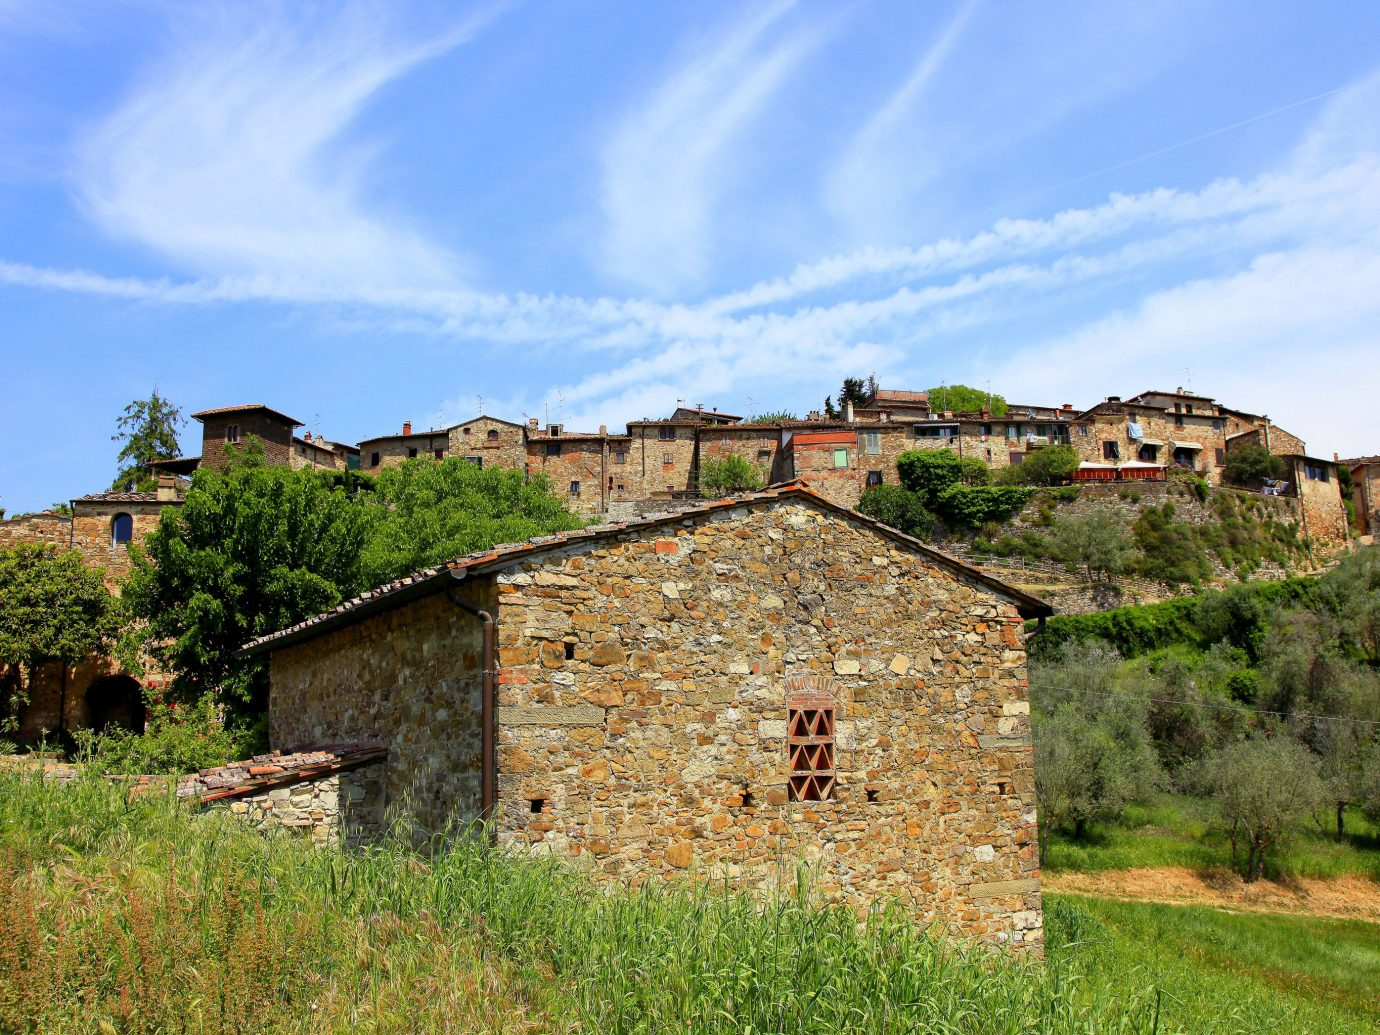 Italy Trip Ideas sky property Village rural area cottage house cloud tree grass home mountain farmhouse estate meadow facade field historic site hill landscape roof plant grassland